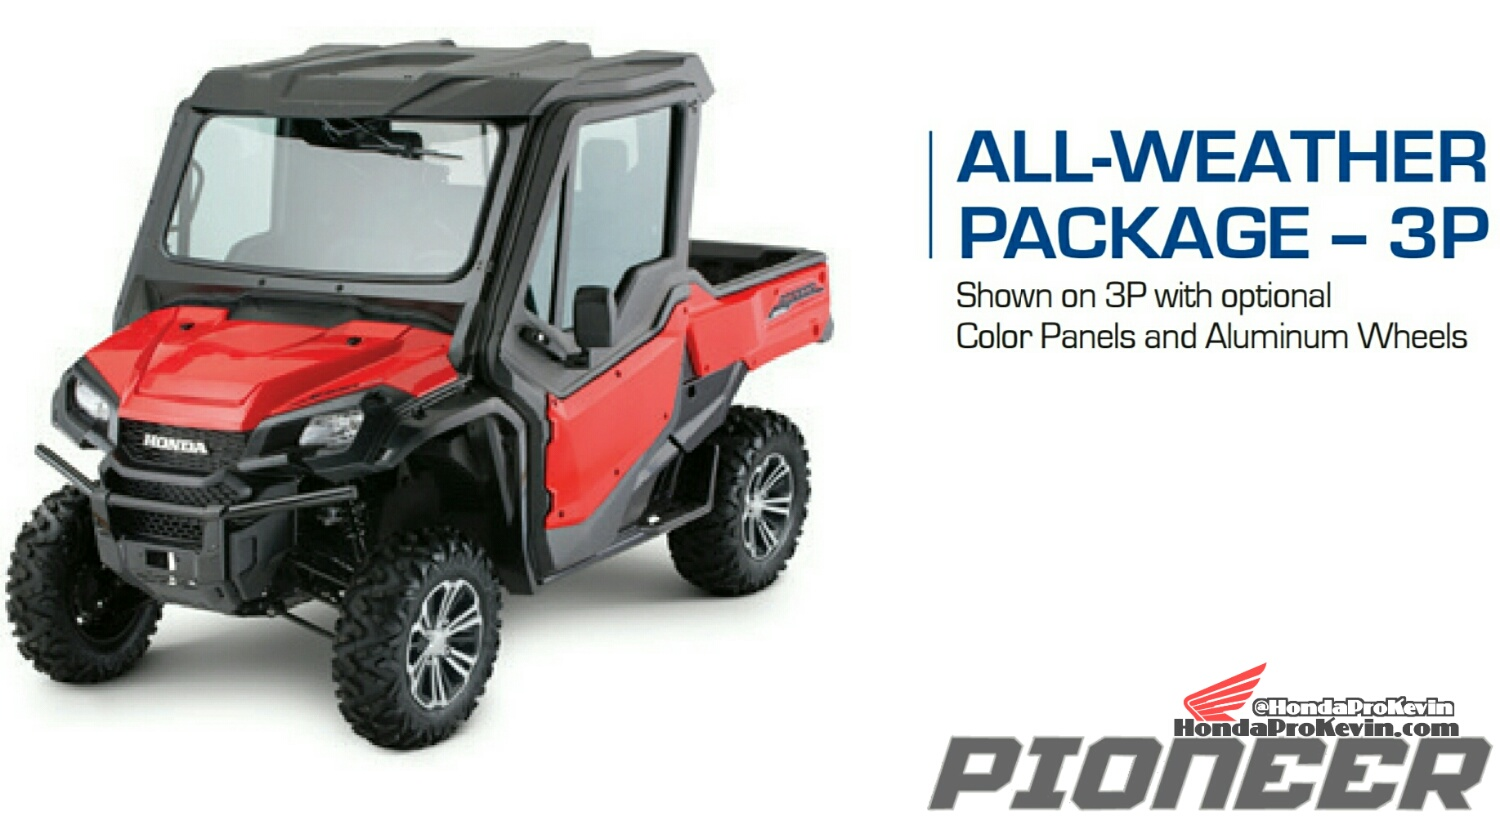 2018 Honda Pioneer 1000 All Weather Package - Accessories - Parts - SxS / UTV / Side by Side ATV